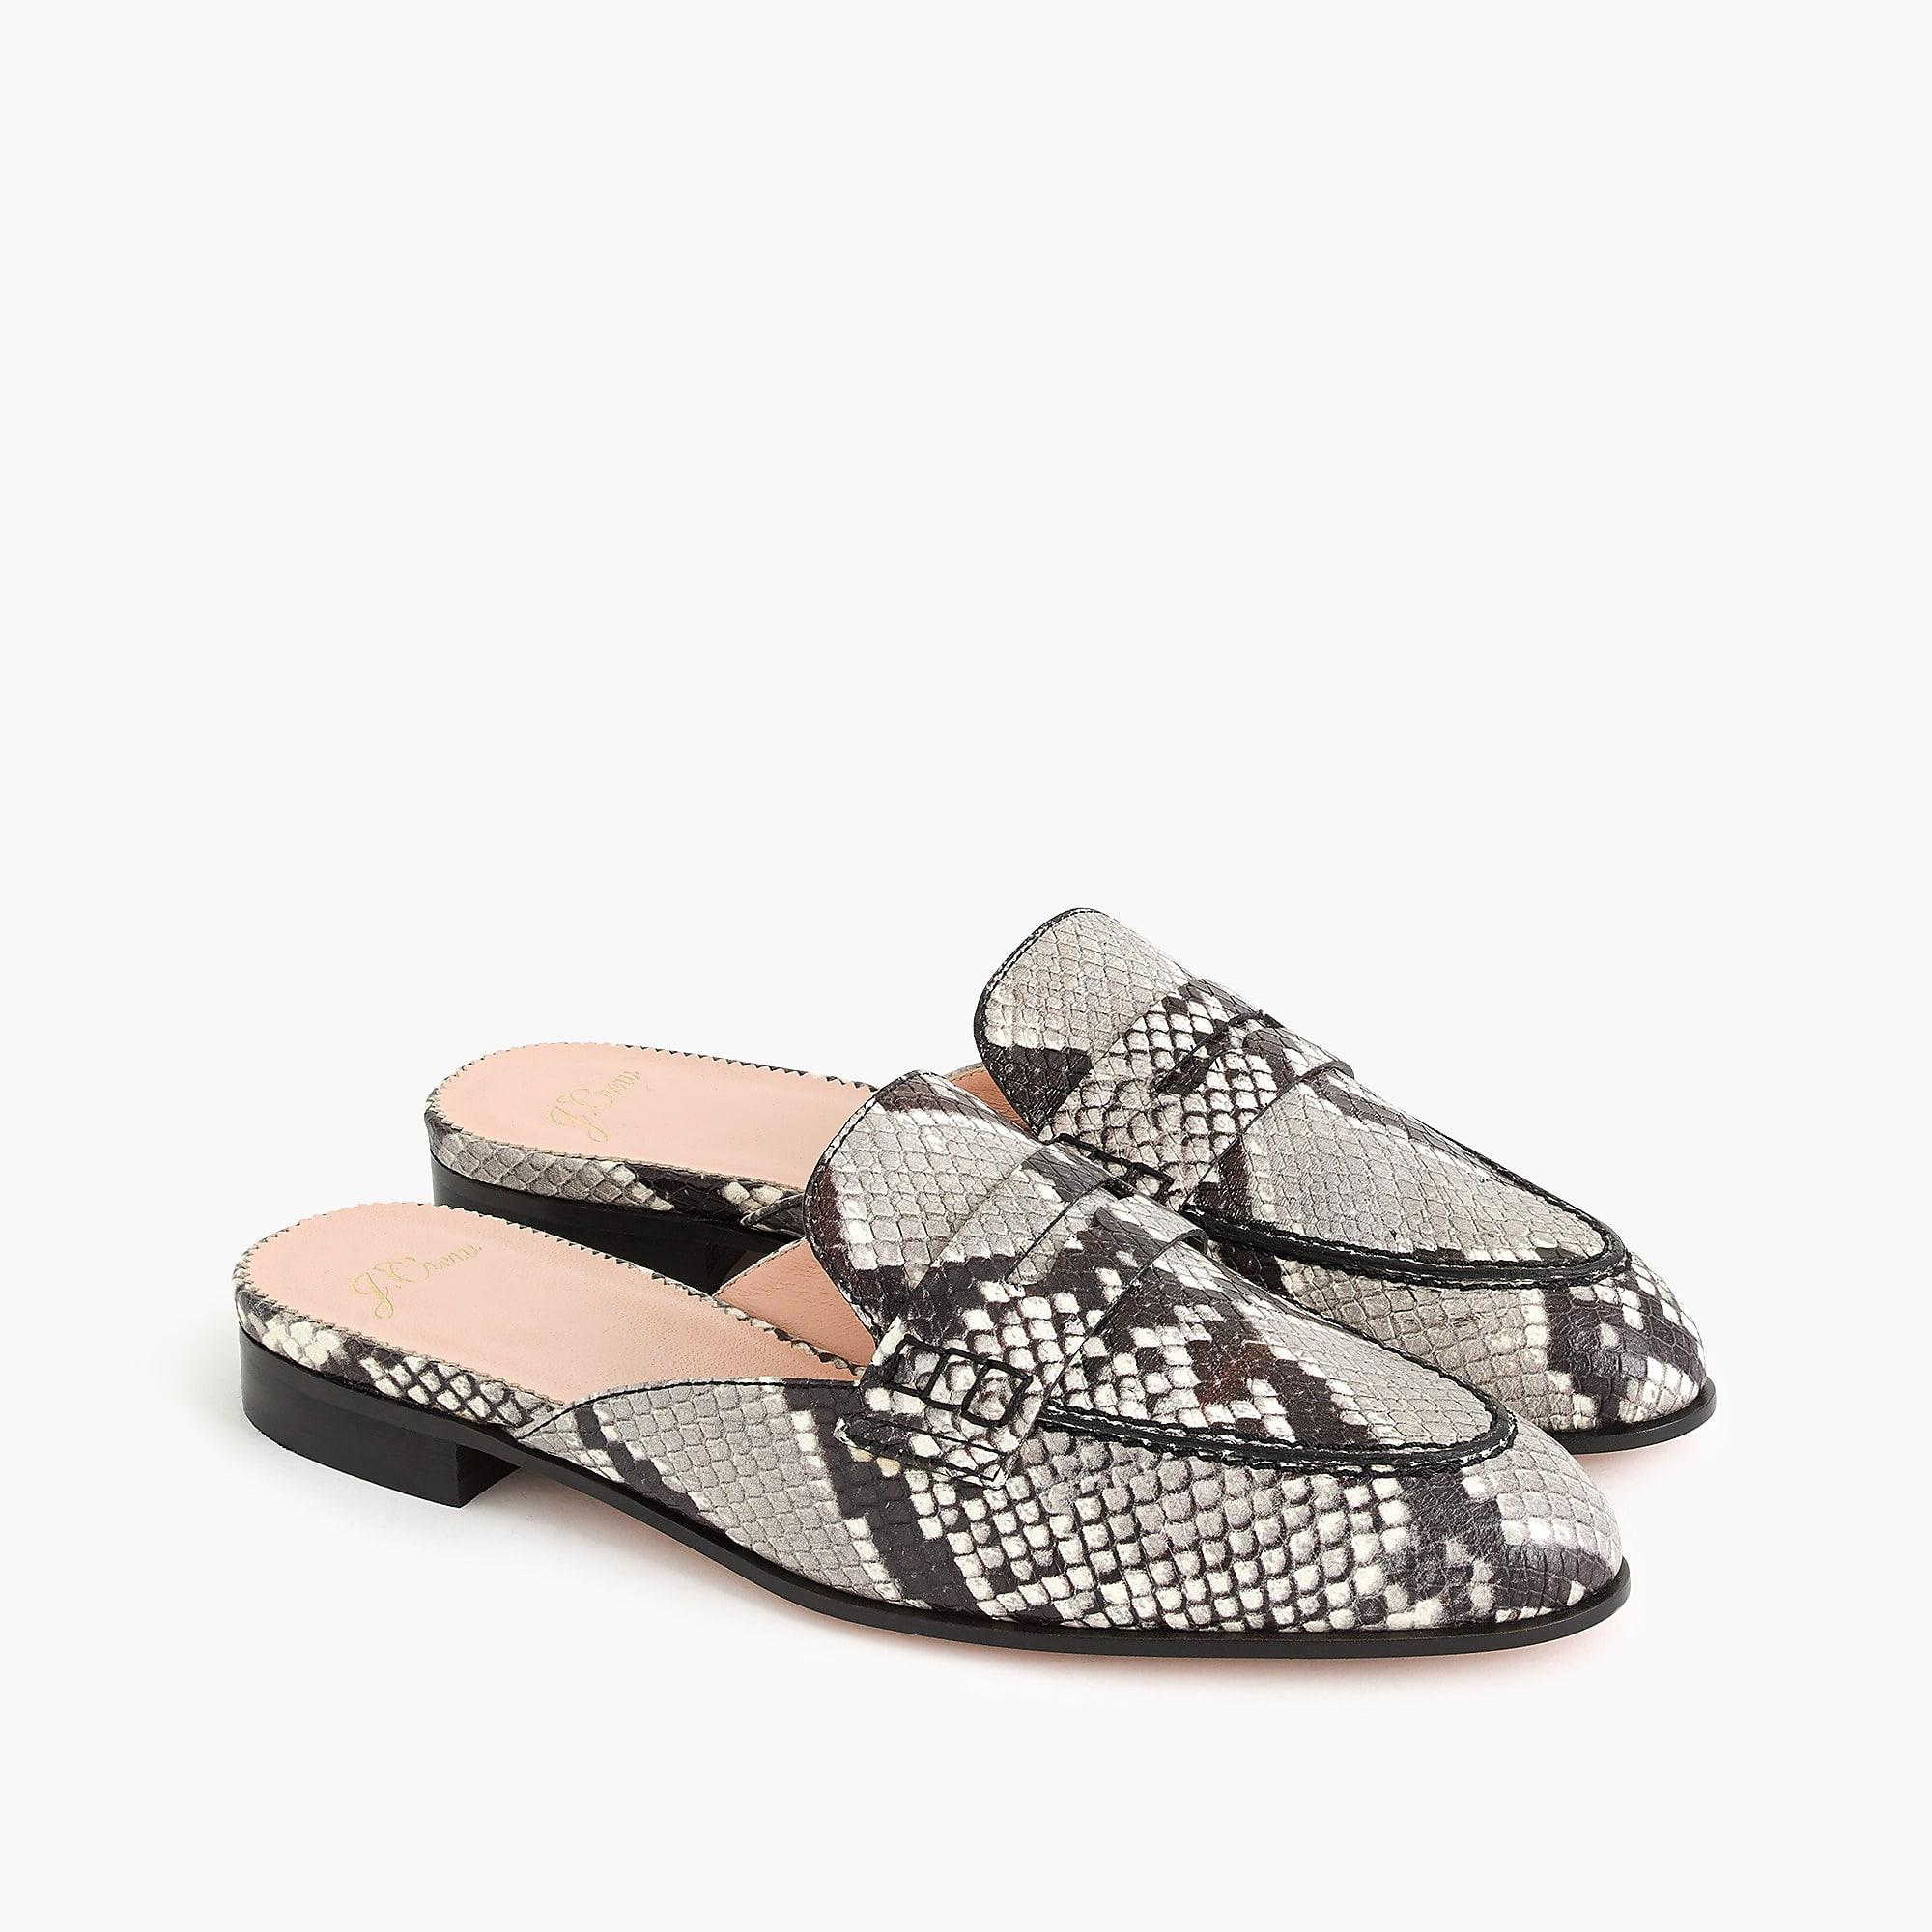 57d66cd609e Lyst - J.Crew Academy Penny Loafer Mules In Faux Snakeskin